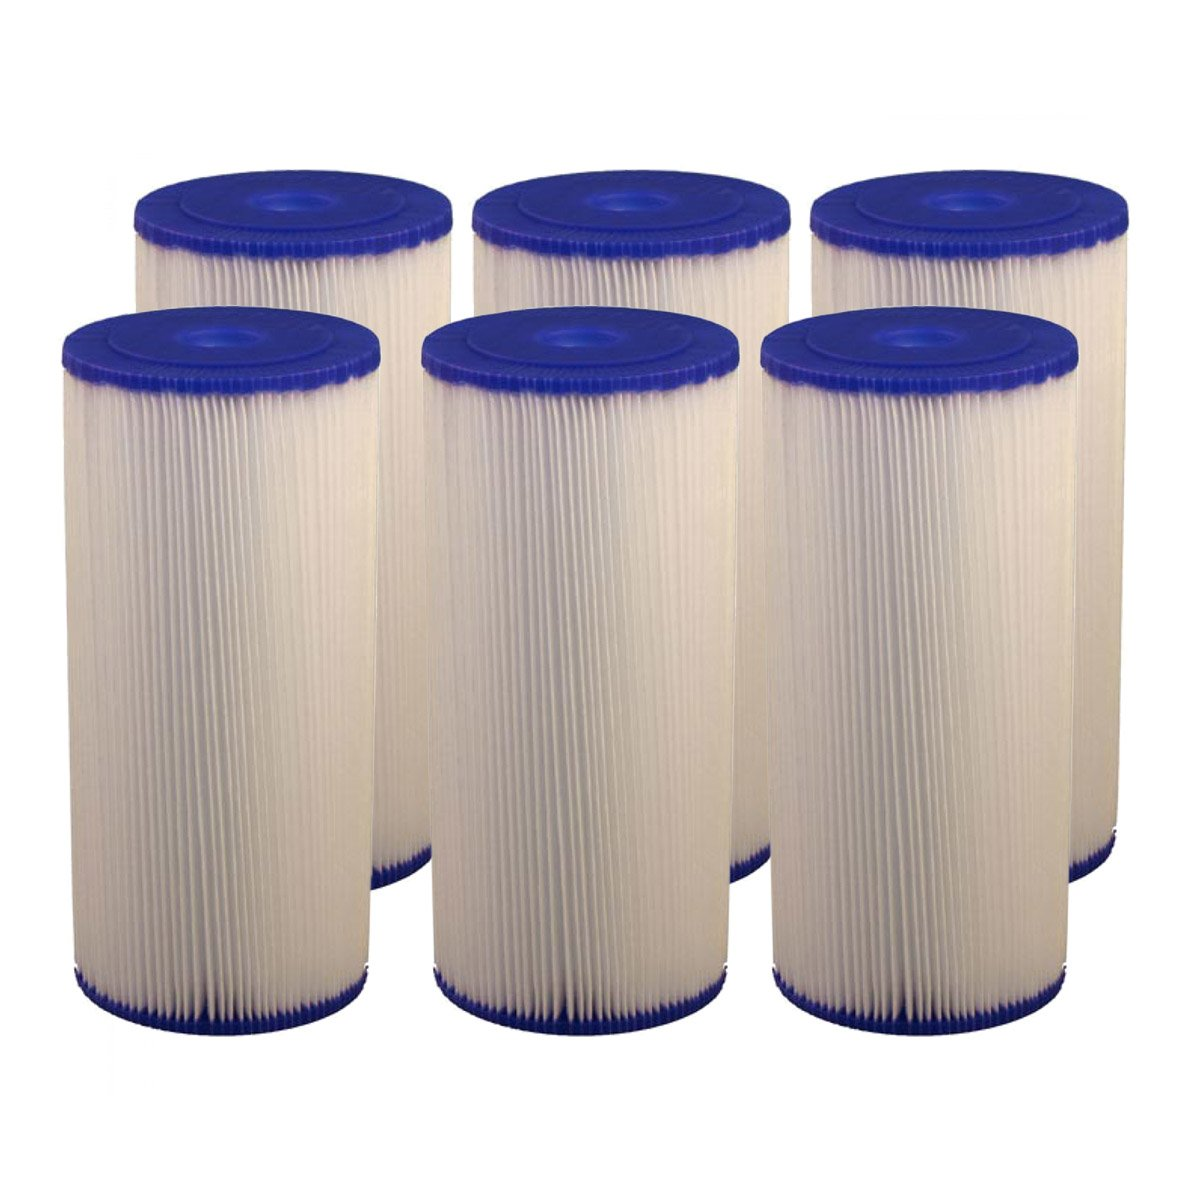 Tier1 Replacement for Hydronix SPC-45-1020 20 Micron 10 x 4.5 Whole House Pleated Sediment Water Filter 6 Pack